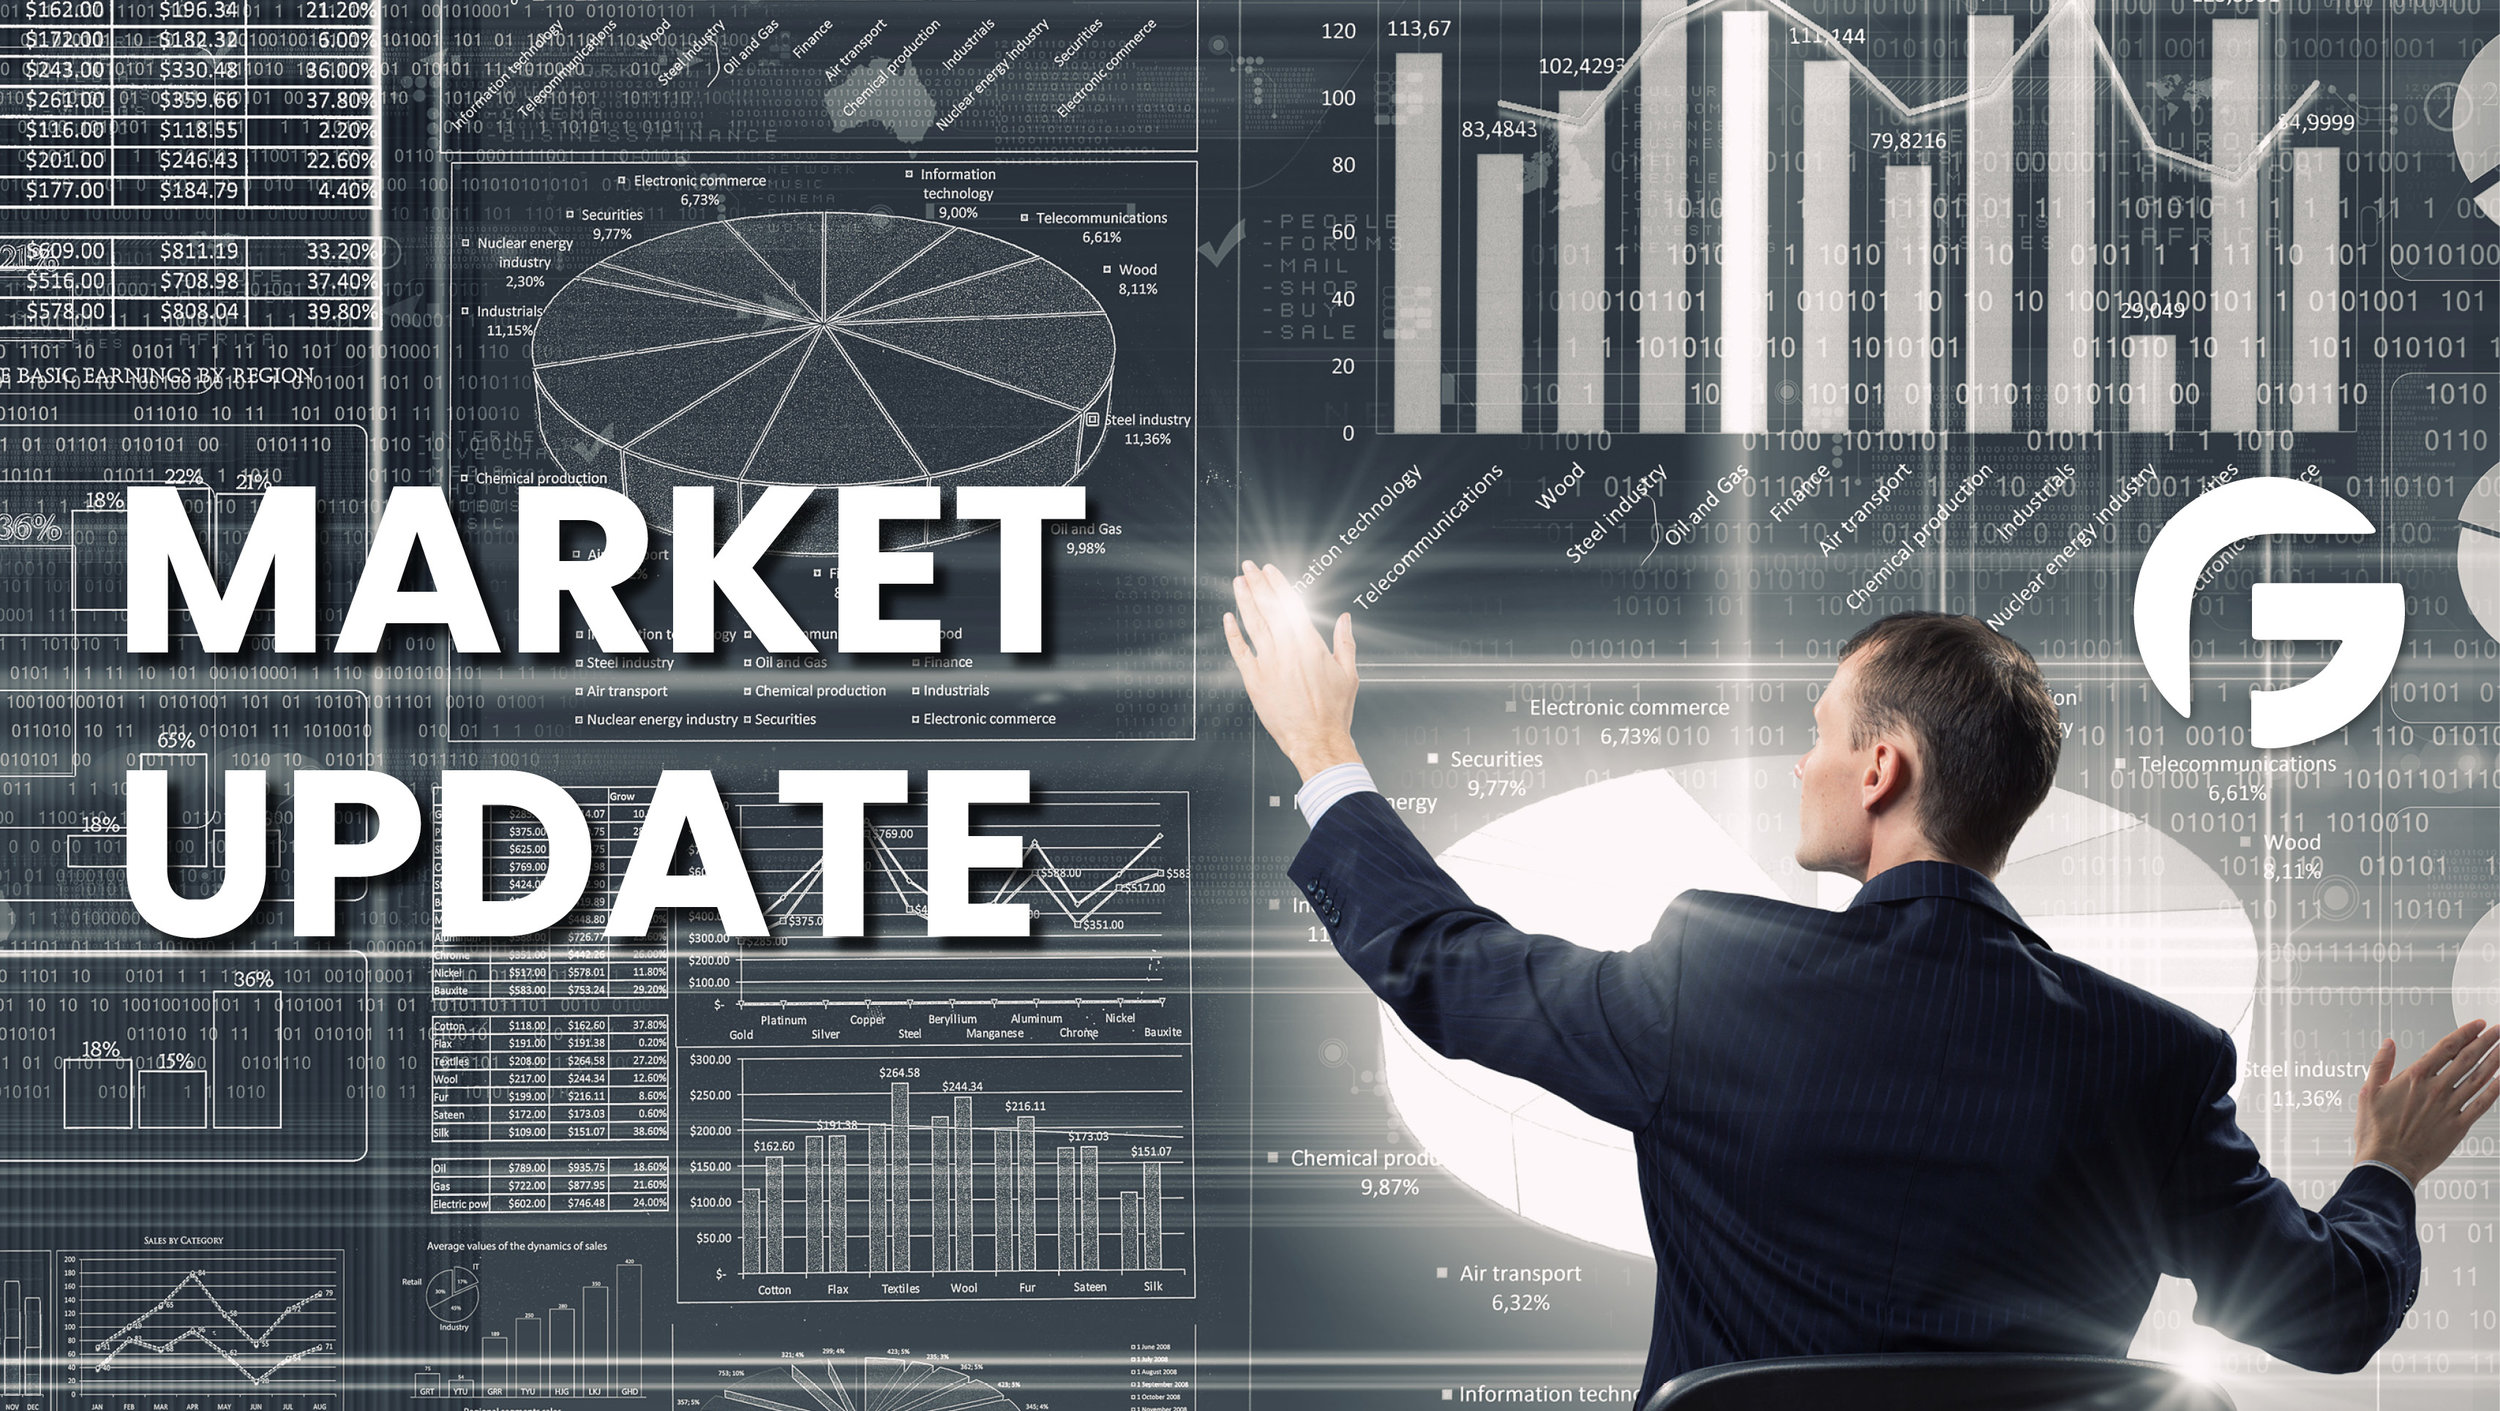 Market Update September 2019 Mortgage Rates Equity Cash Out Refinance